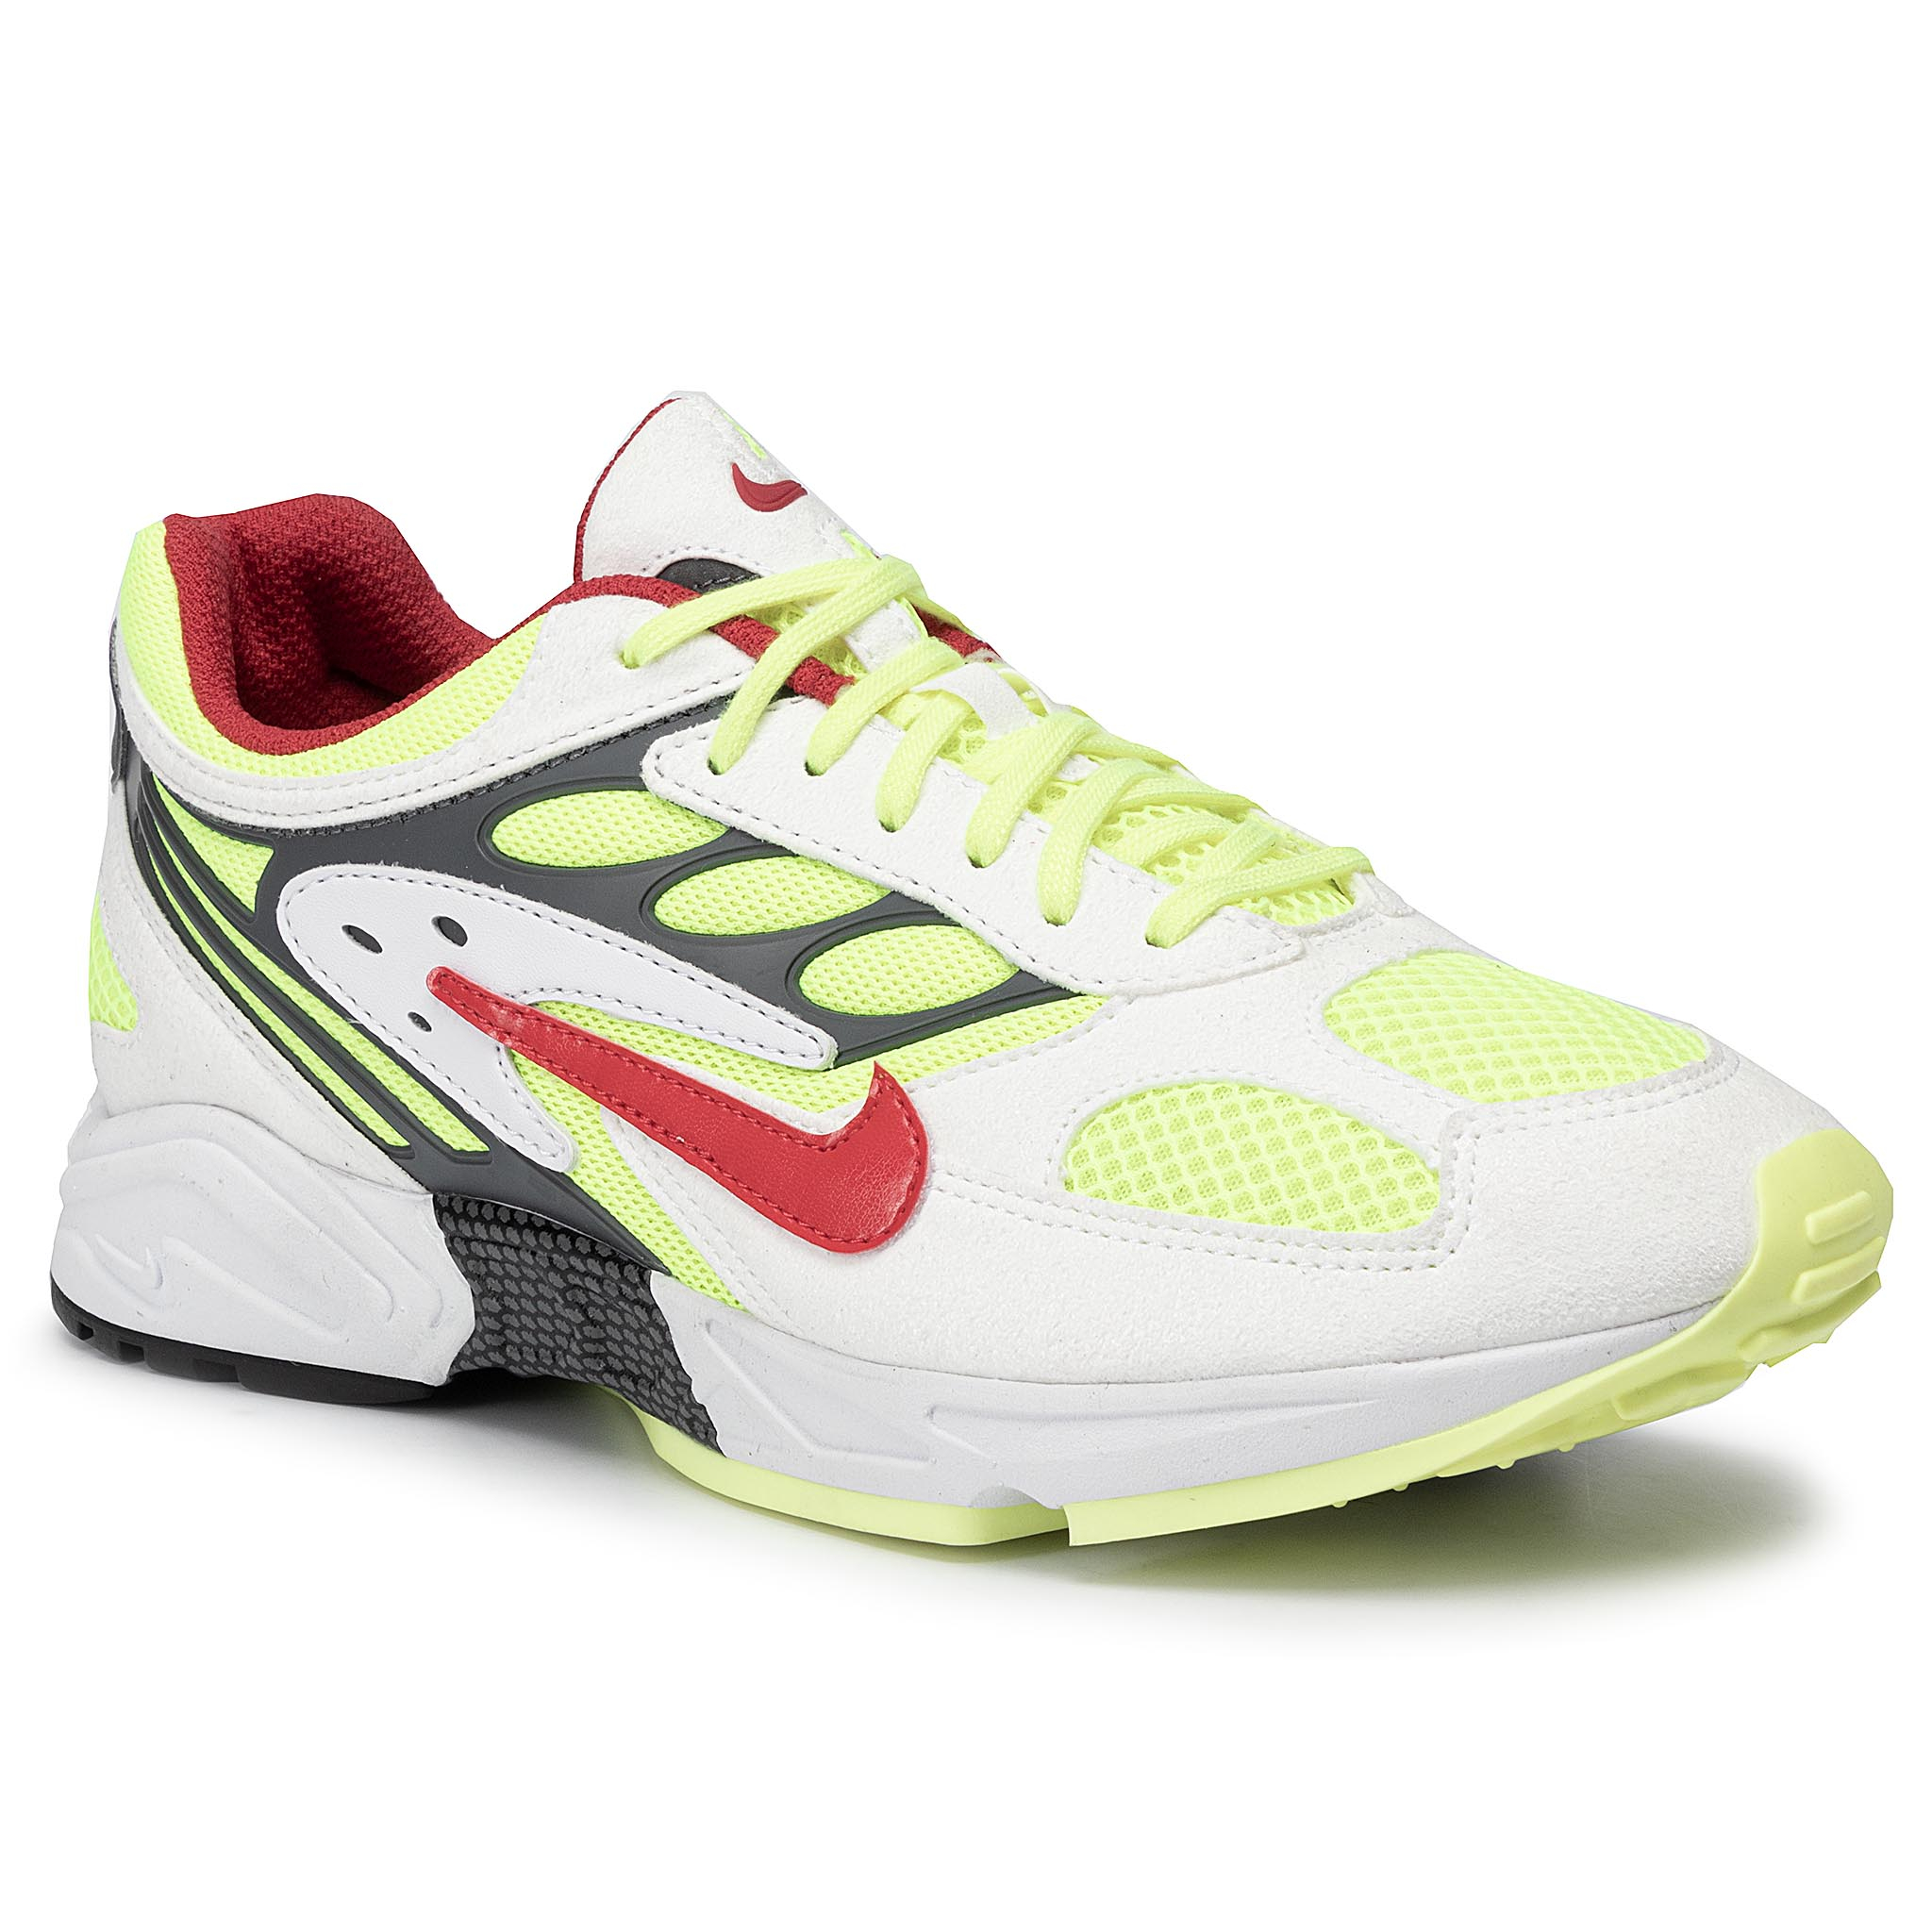 Pantofi NIKE - Air Ghost Racer AT5410 100 White/Atom Red/Neon Yellow New